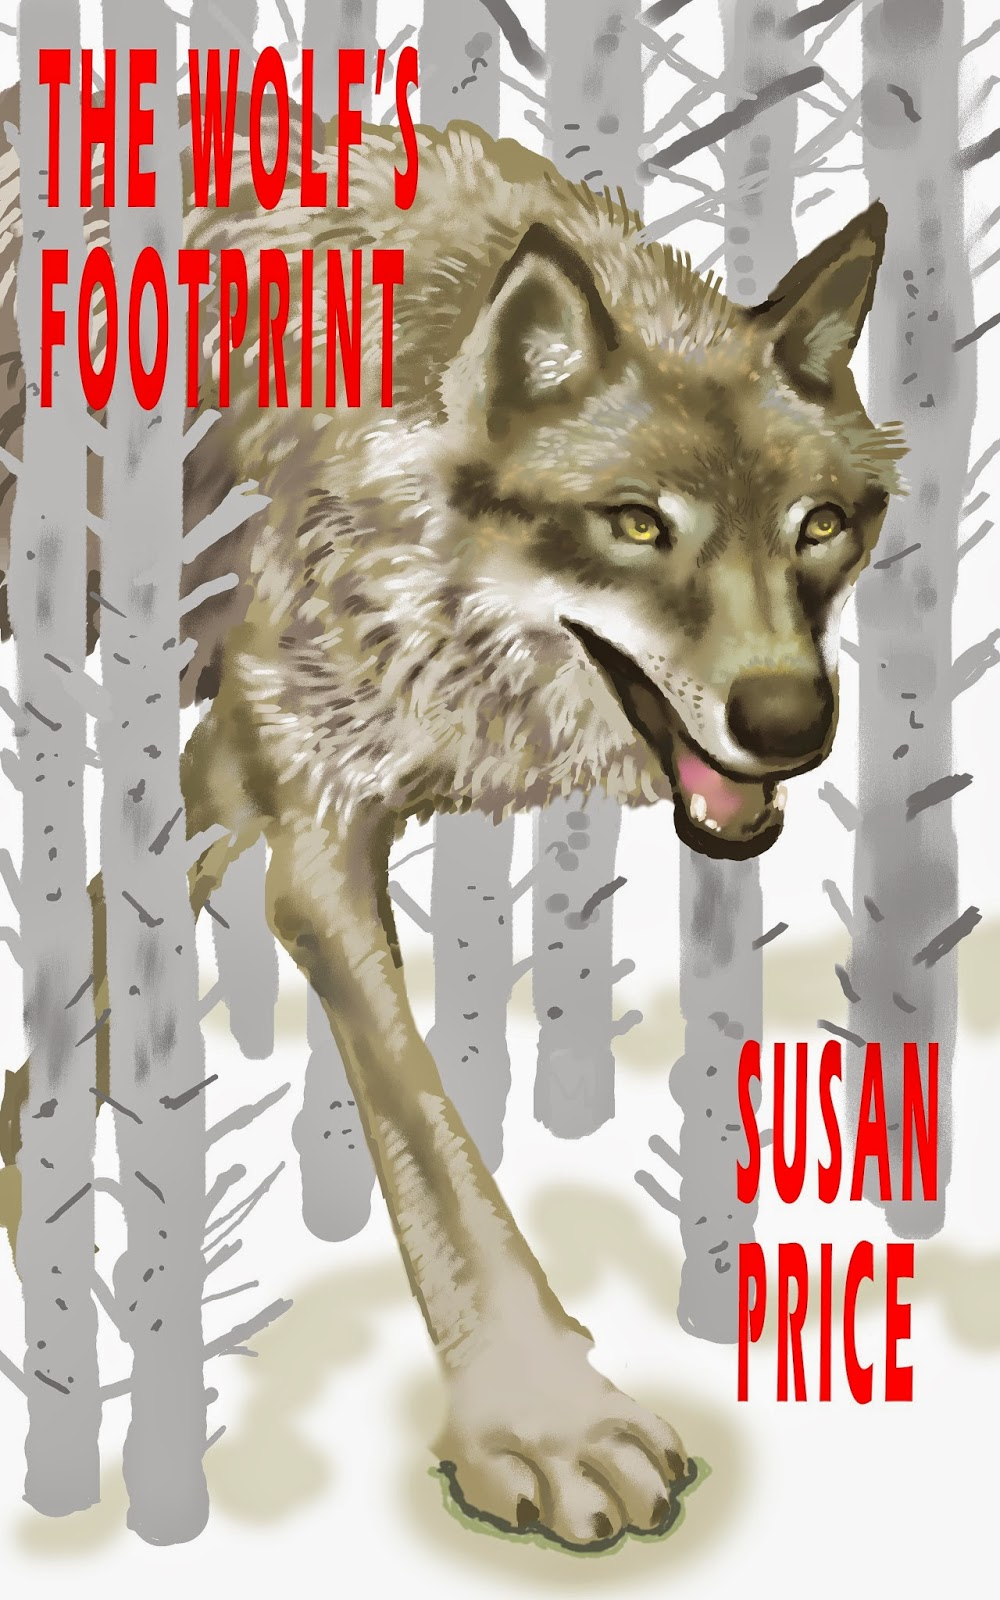 http://electricauthors.jimdo.com/authors/susan-price/the-wolf-s-footprint/